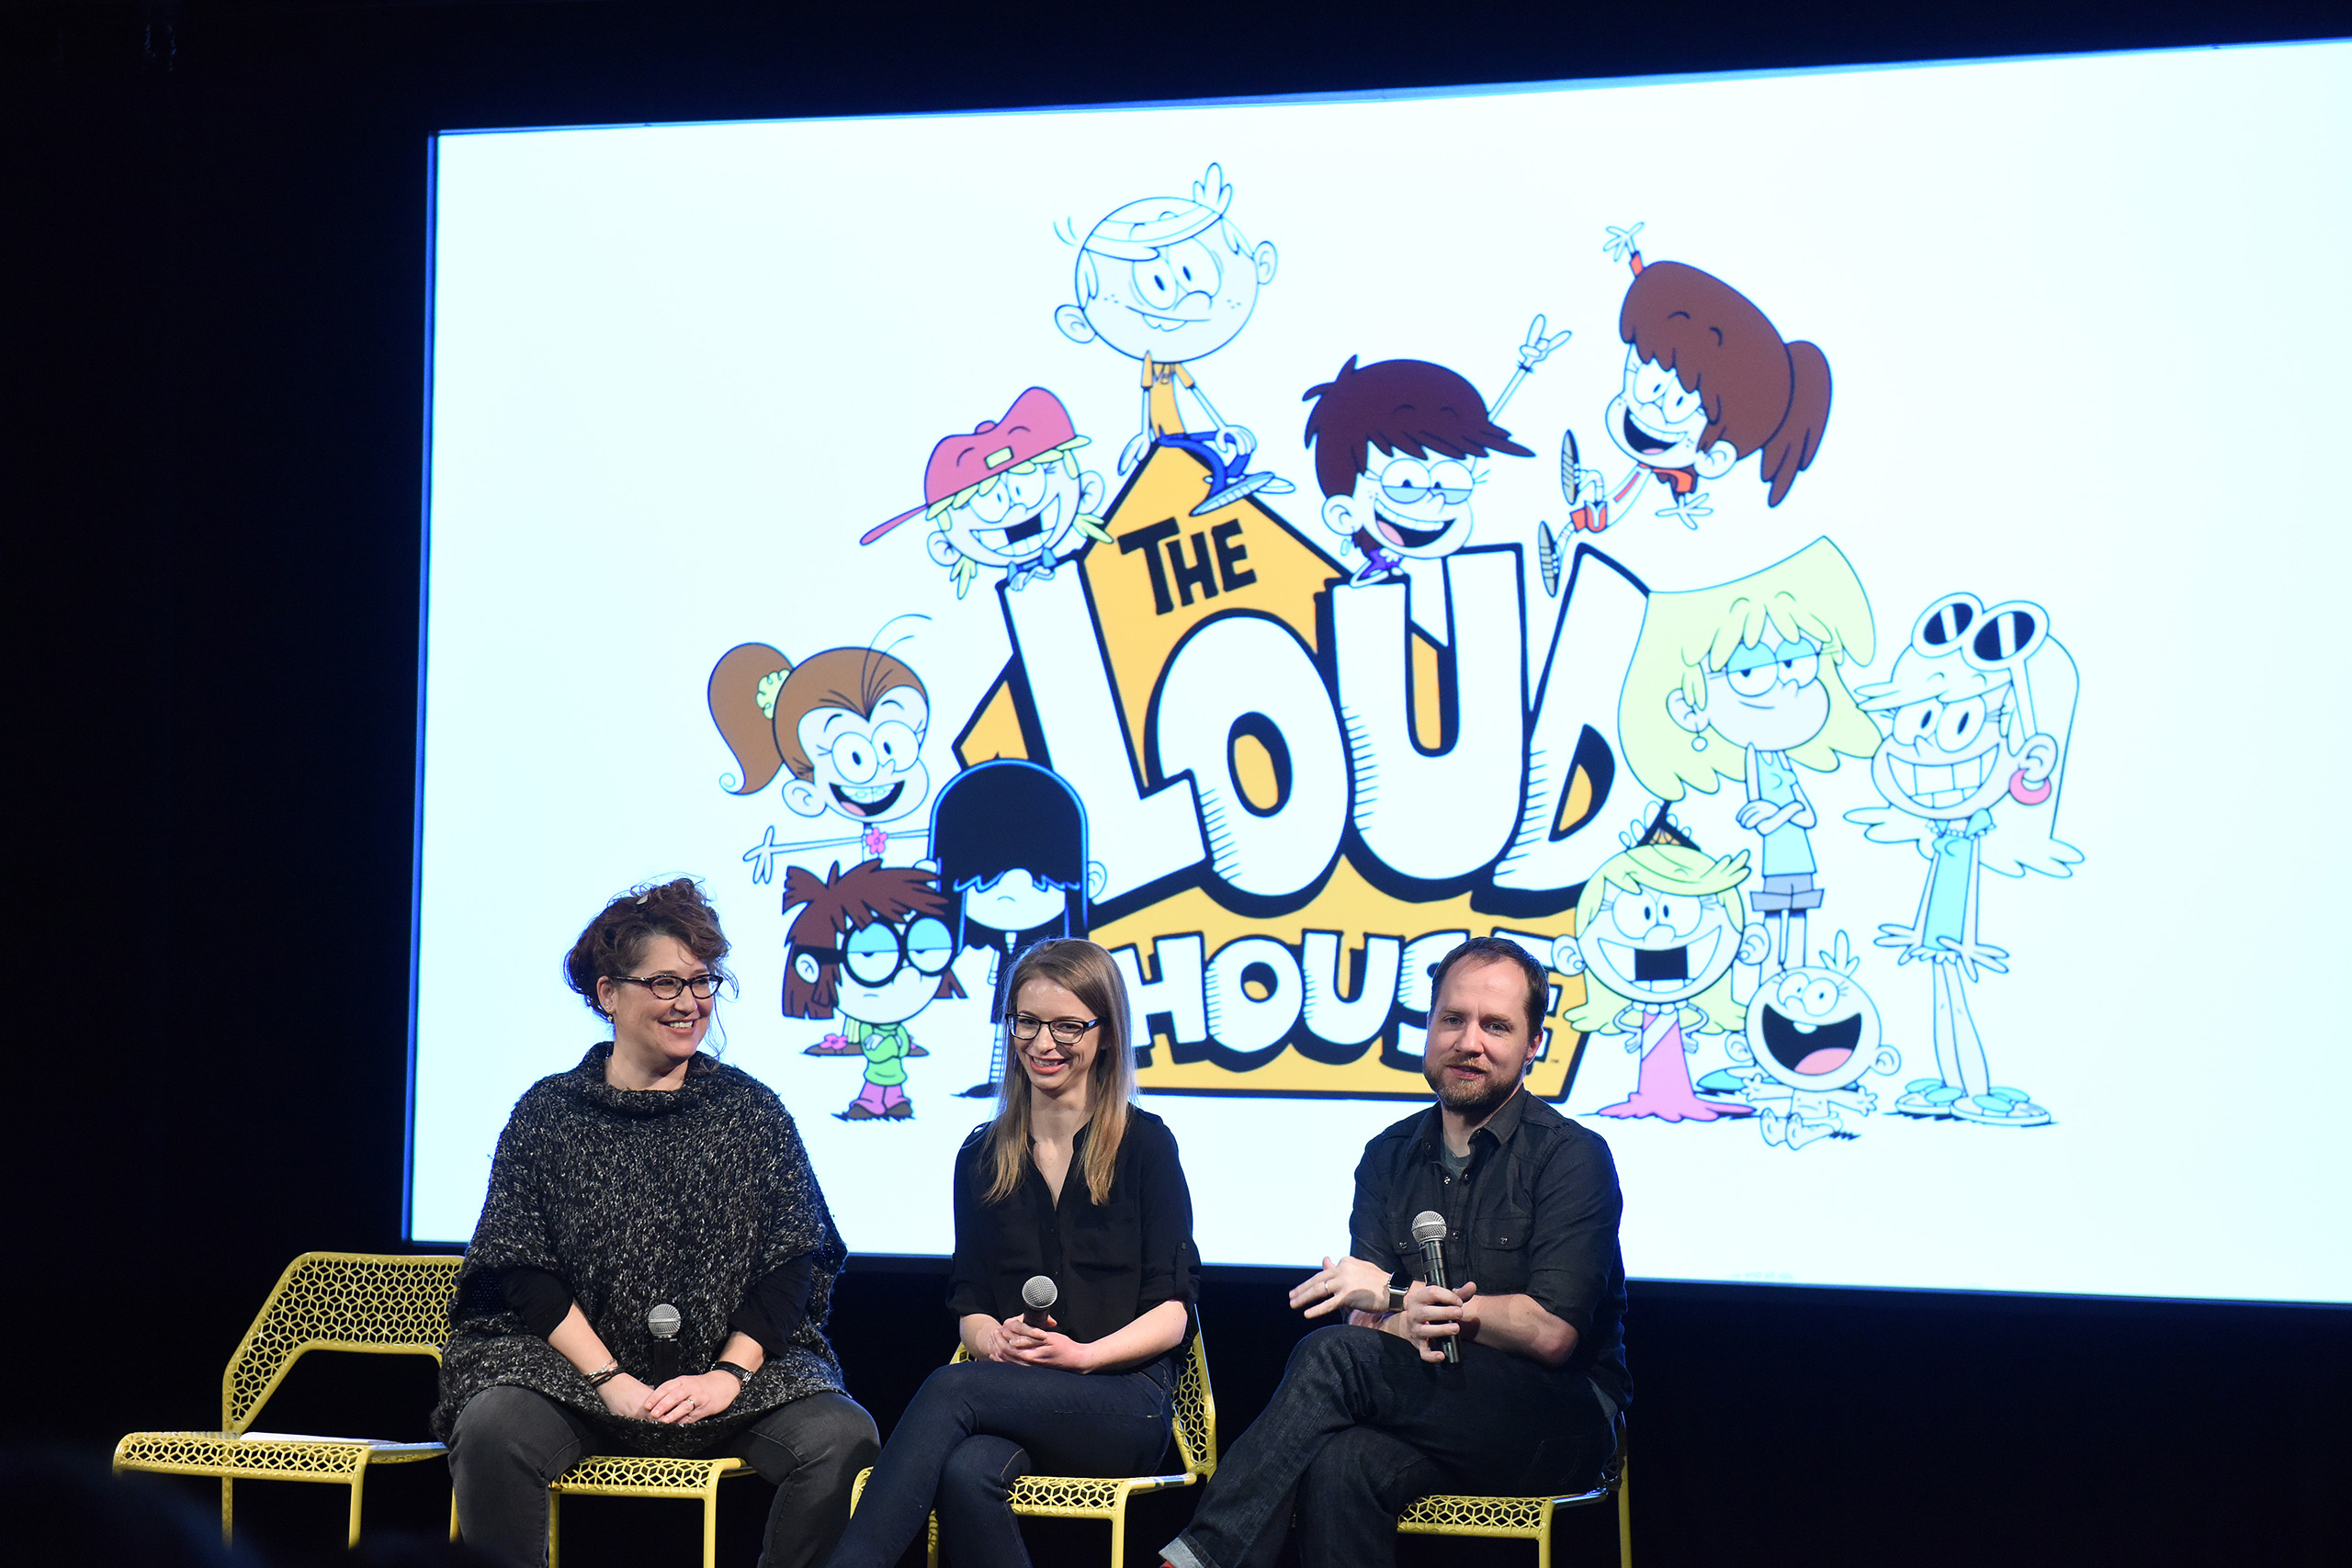 Producer Karen Malach, writer Karla Sakas Shropshire and executive producer Chris Savino speak during  The Loud House  event presented by Nickelodeon during Day Two of aTVfest 2016 presented by SCAD in Atlanta, Georgia, on Feb. 5, 2016.